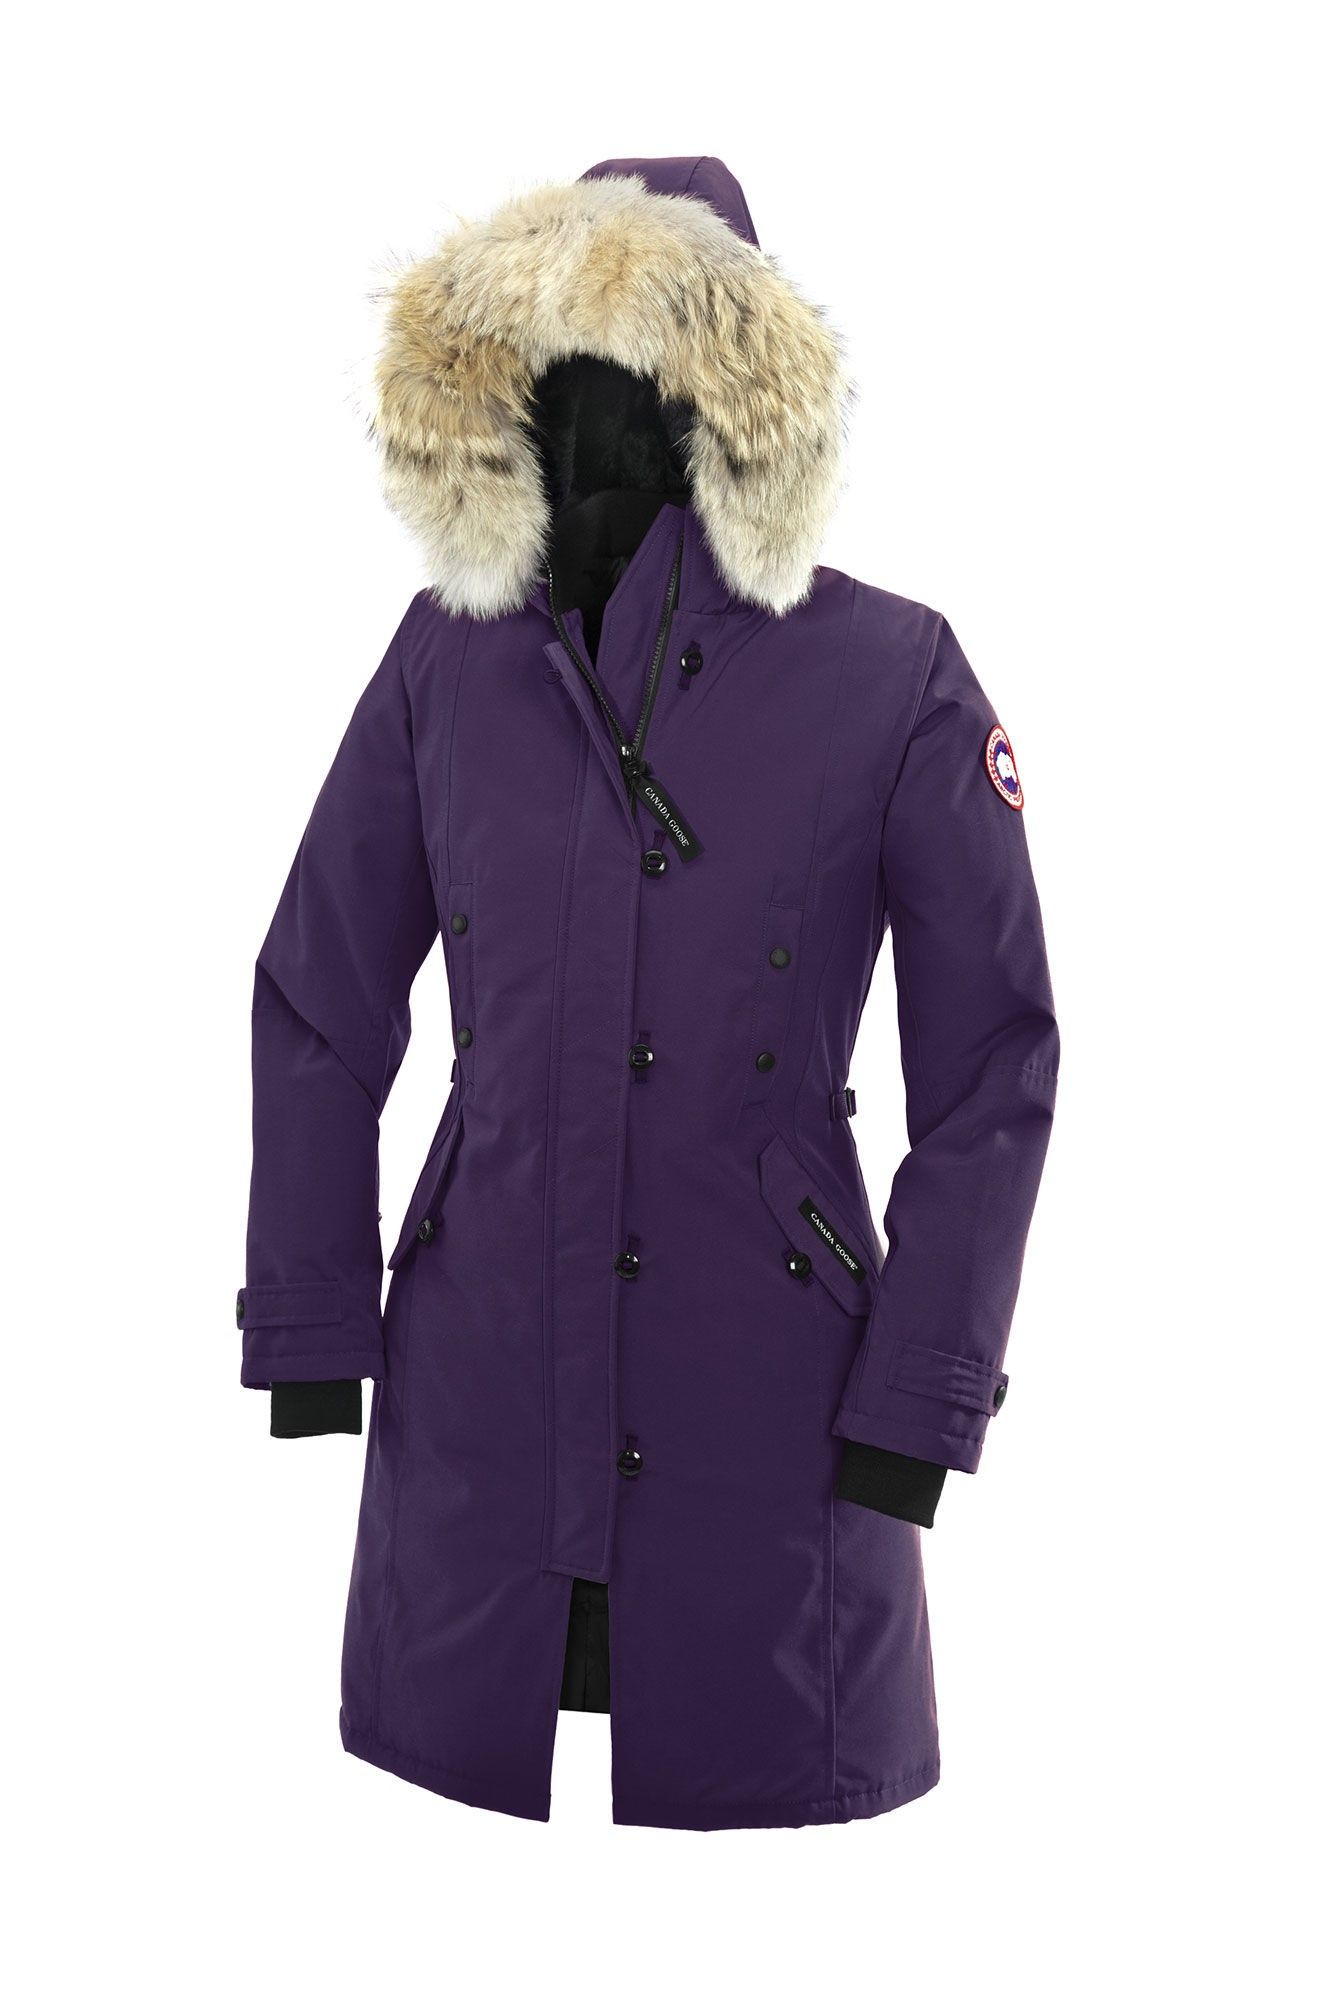 canadagoose 99 on winter outfits pinterest fashion rh pinterest com